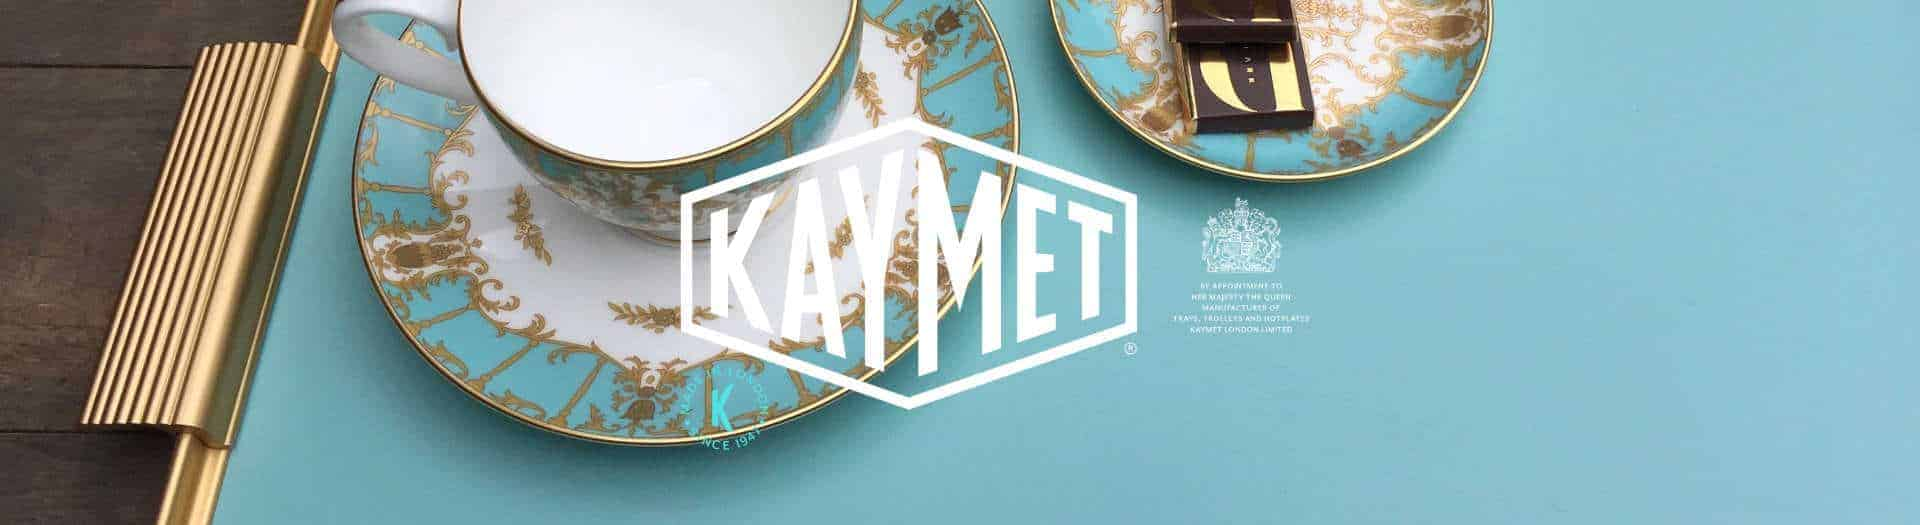 British Made Kaymet Logo Header